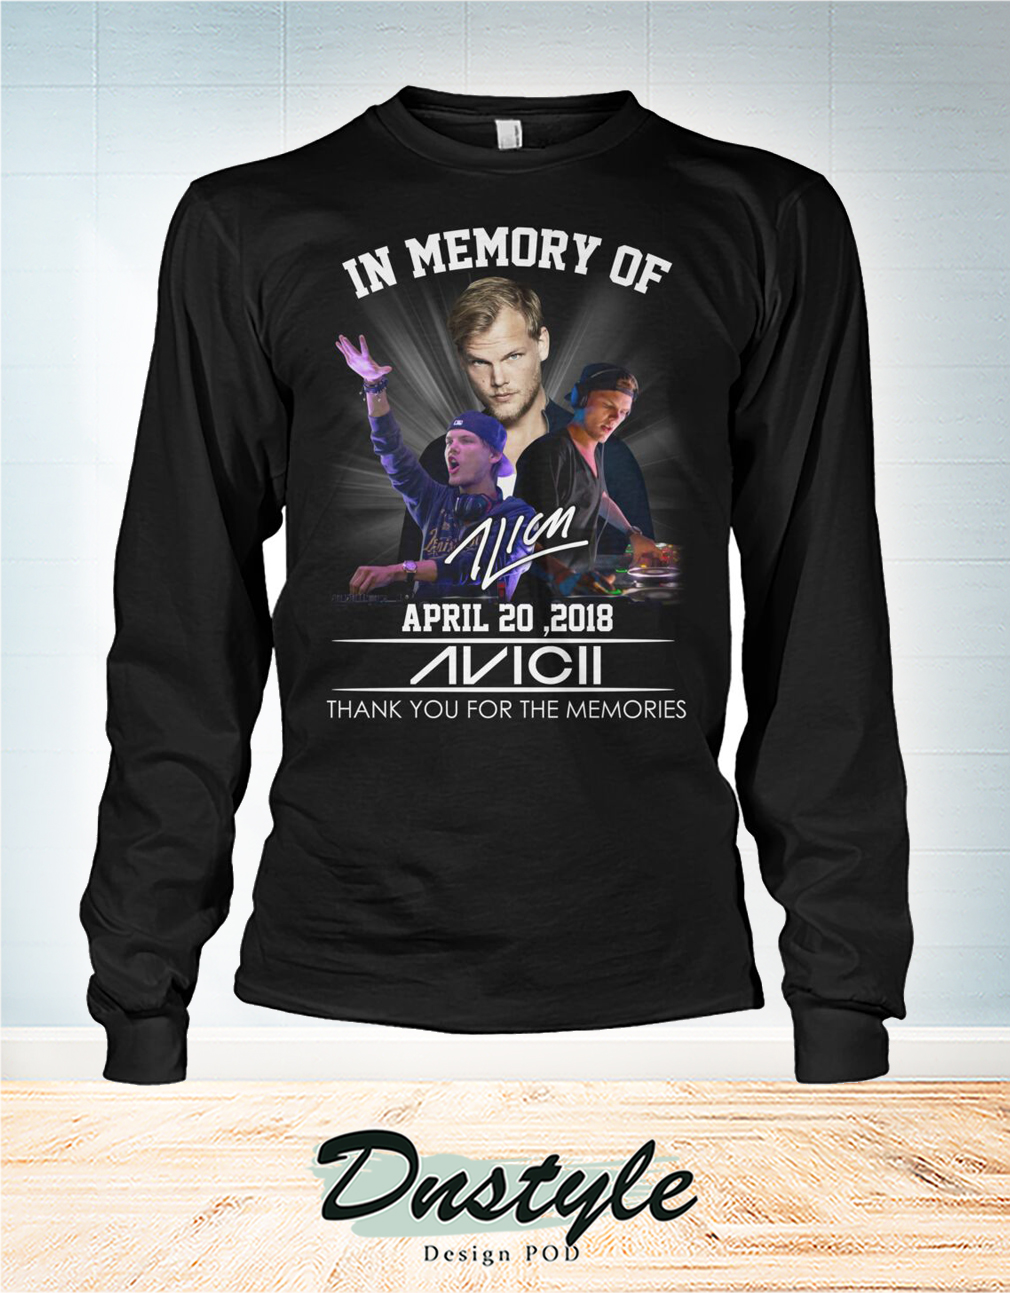 In memory of Avicii april 20 2018 thank you for the memories long sleeve